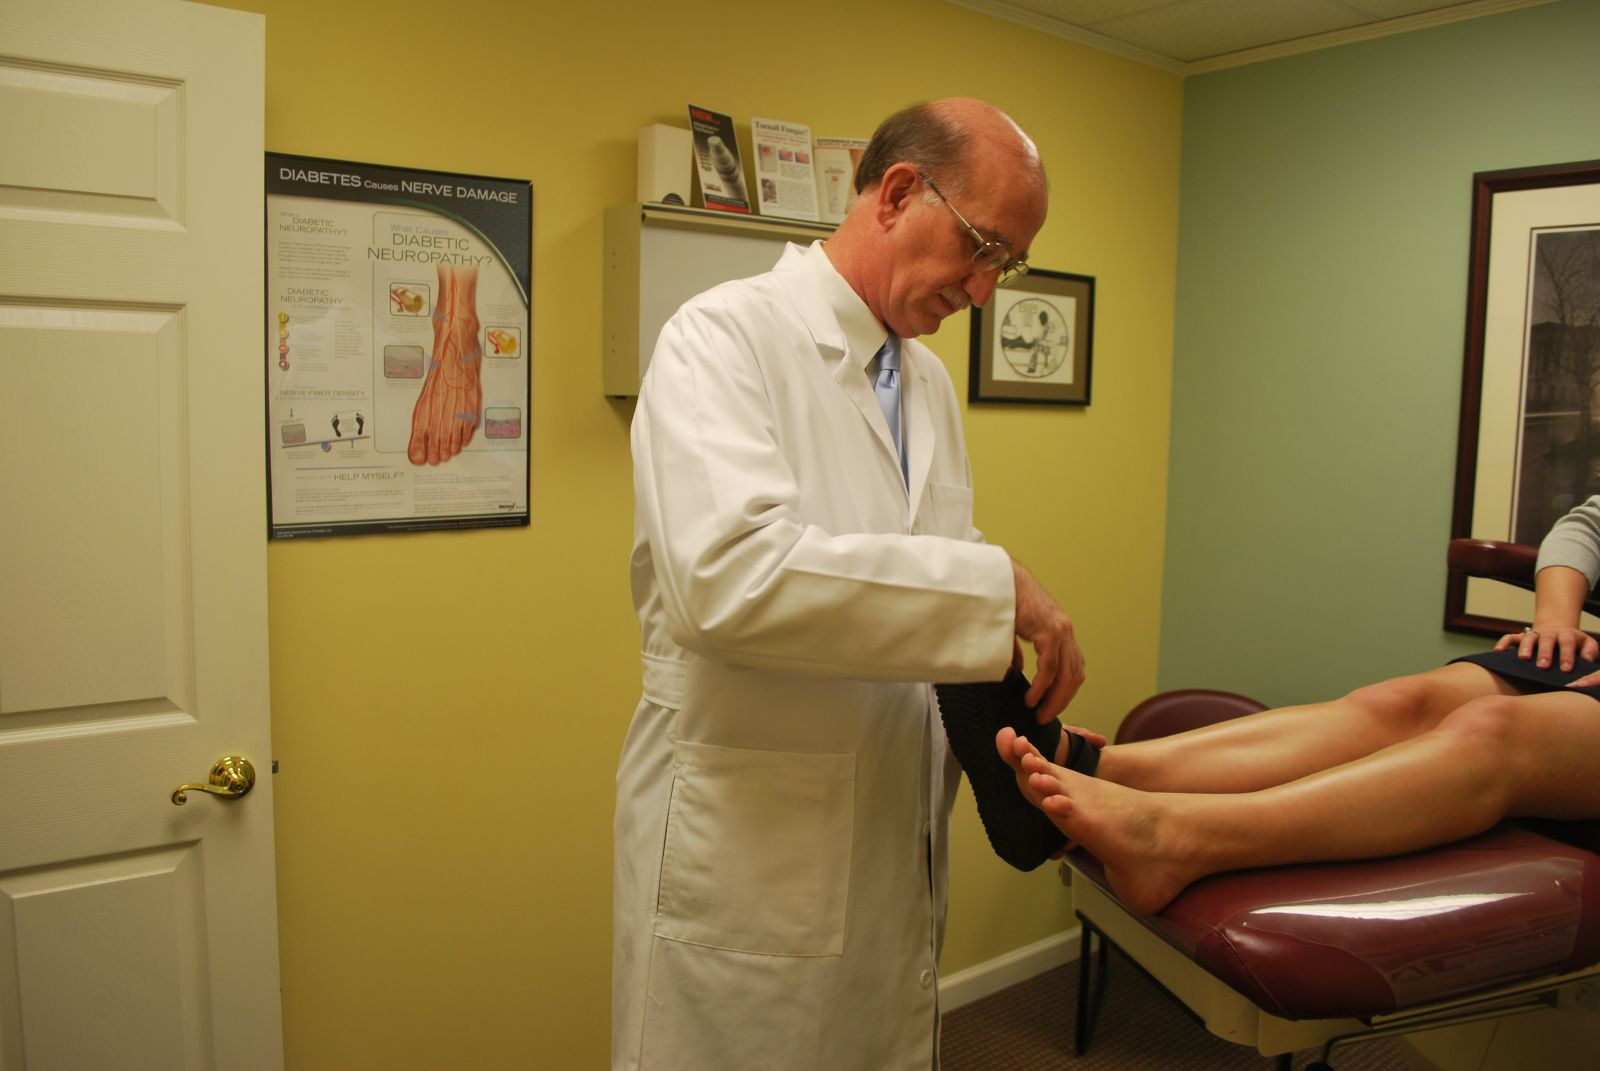 Podiatrist Appointment in Woodbridge, VA